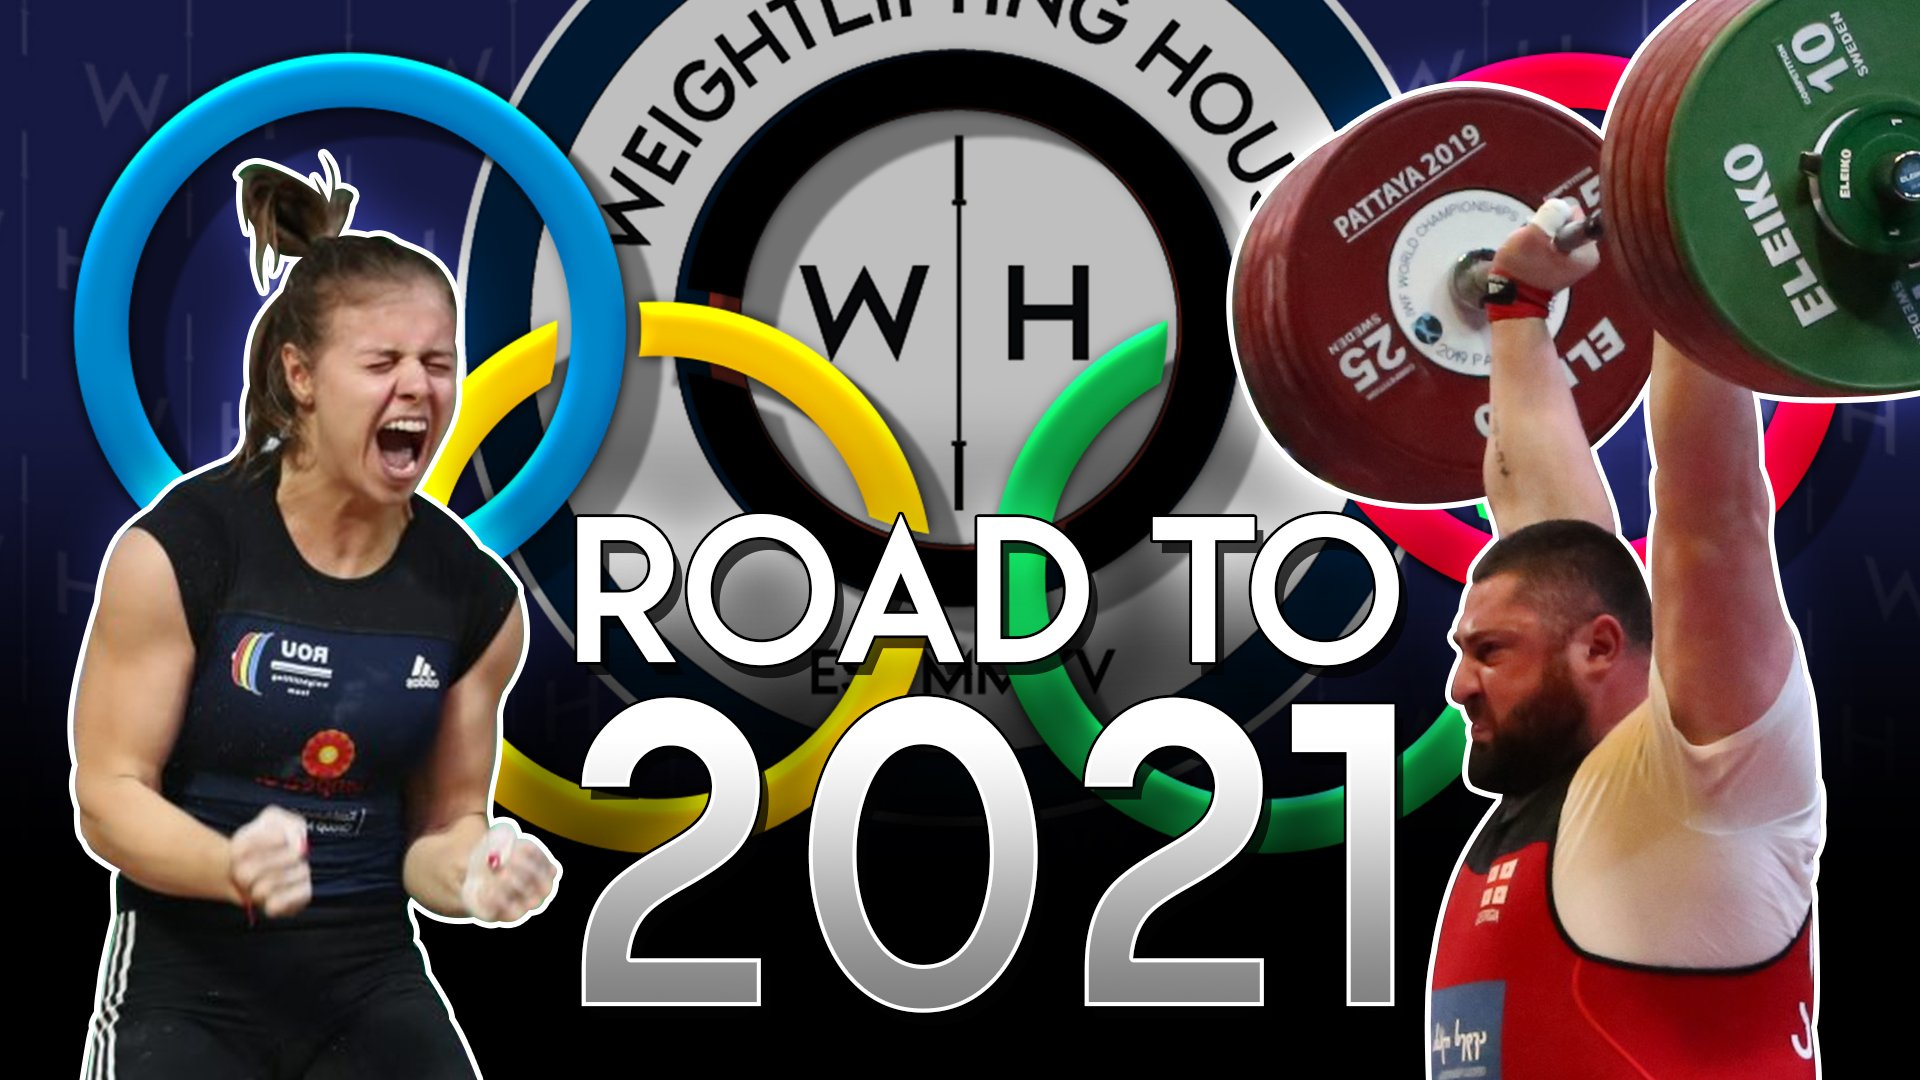 How to qualify for the Olympics in Weightlifting - Robi points and country placing